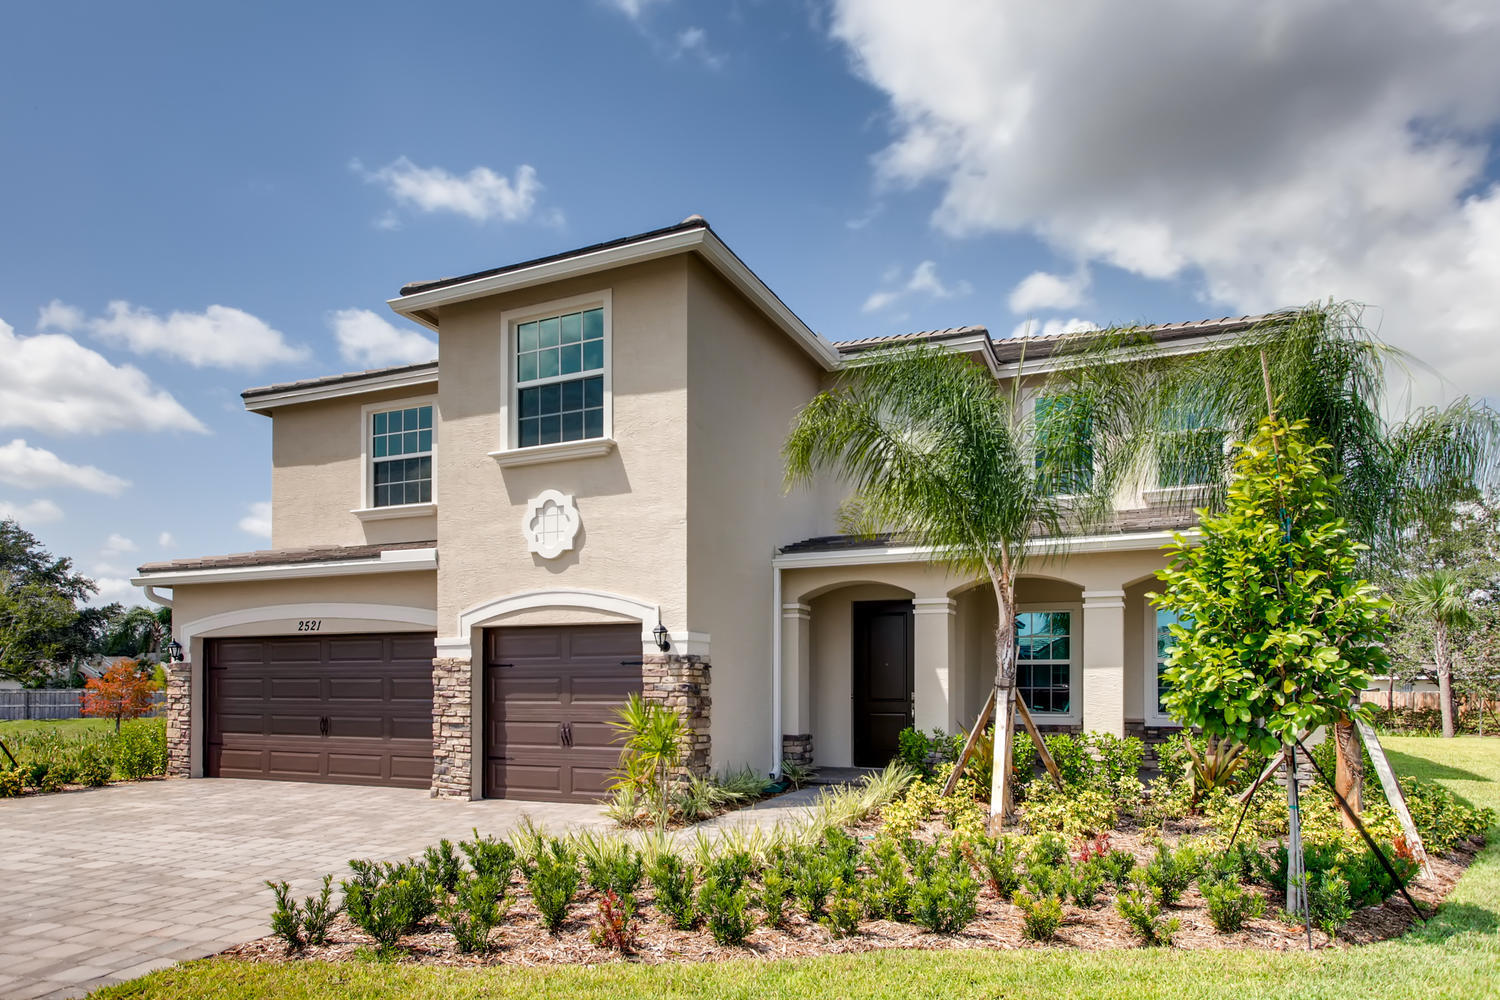 Photo of 2521 SW Berry Park Circle, Palm City, FL 34990